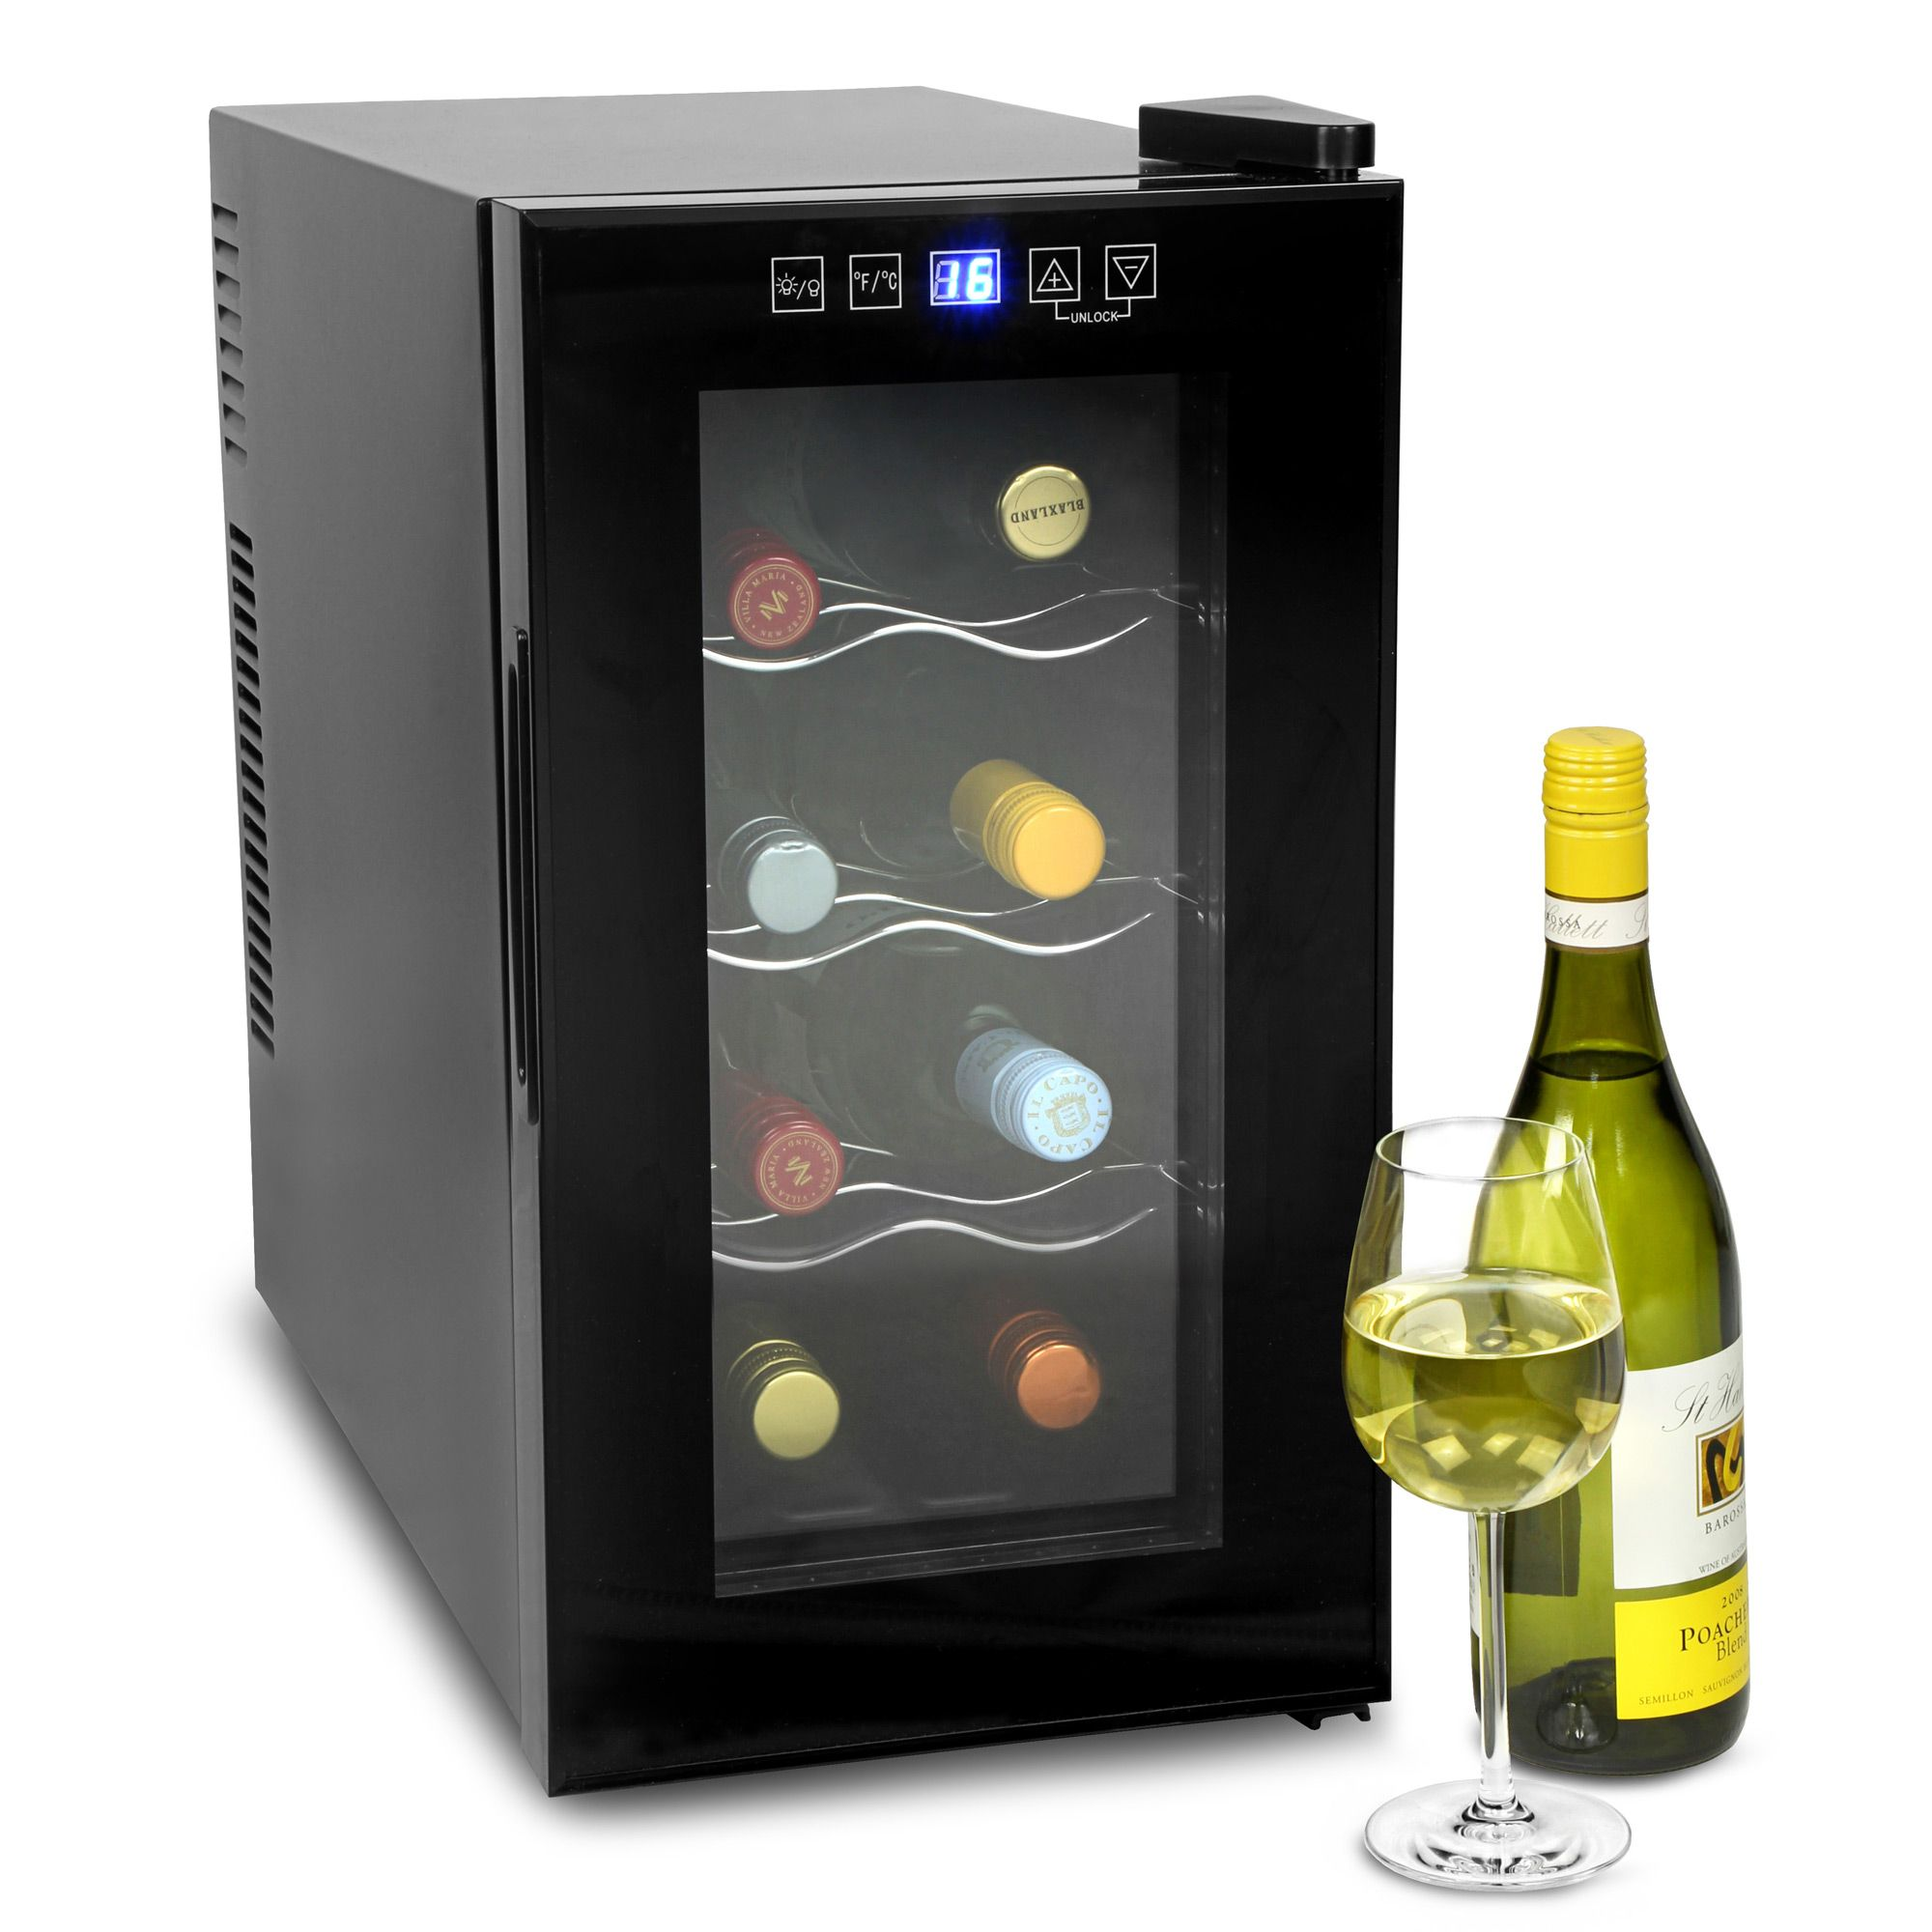 Perfect for cheese cave - VinoTech 8 Bottle Wine Cellar